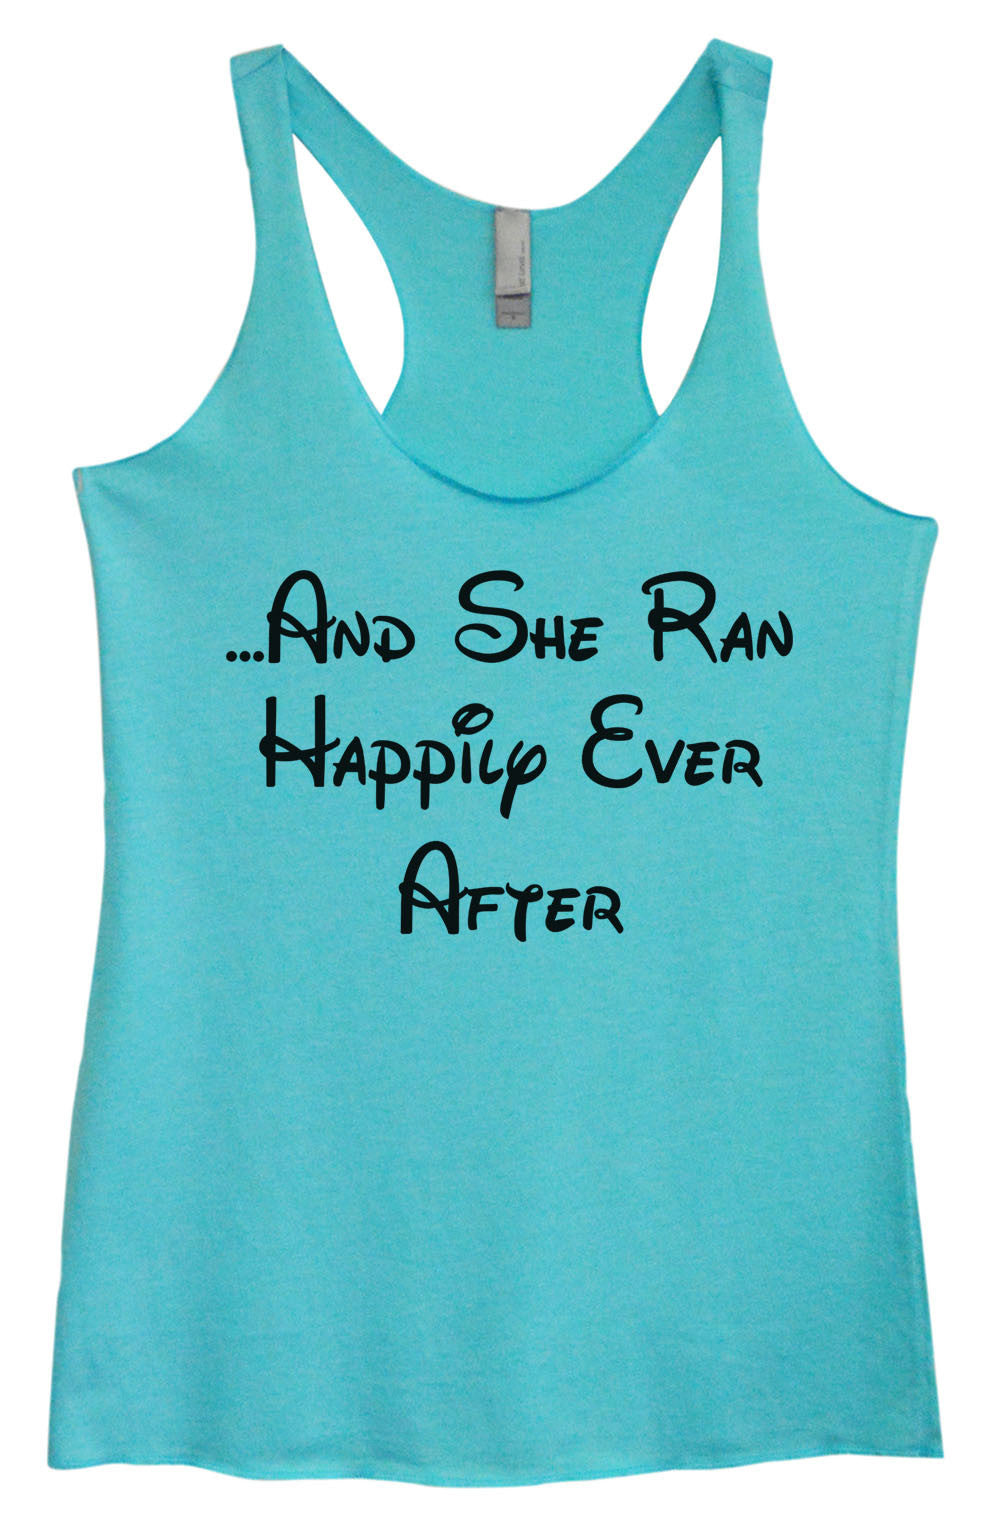 Womens Fashion Triblend Tank Top - ...And She Ran Happily Ever After - Tri-954 - Funny Shirts Tank Tops Burnouts and Triblends  - 3